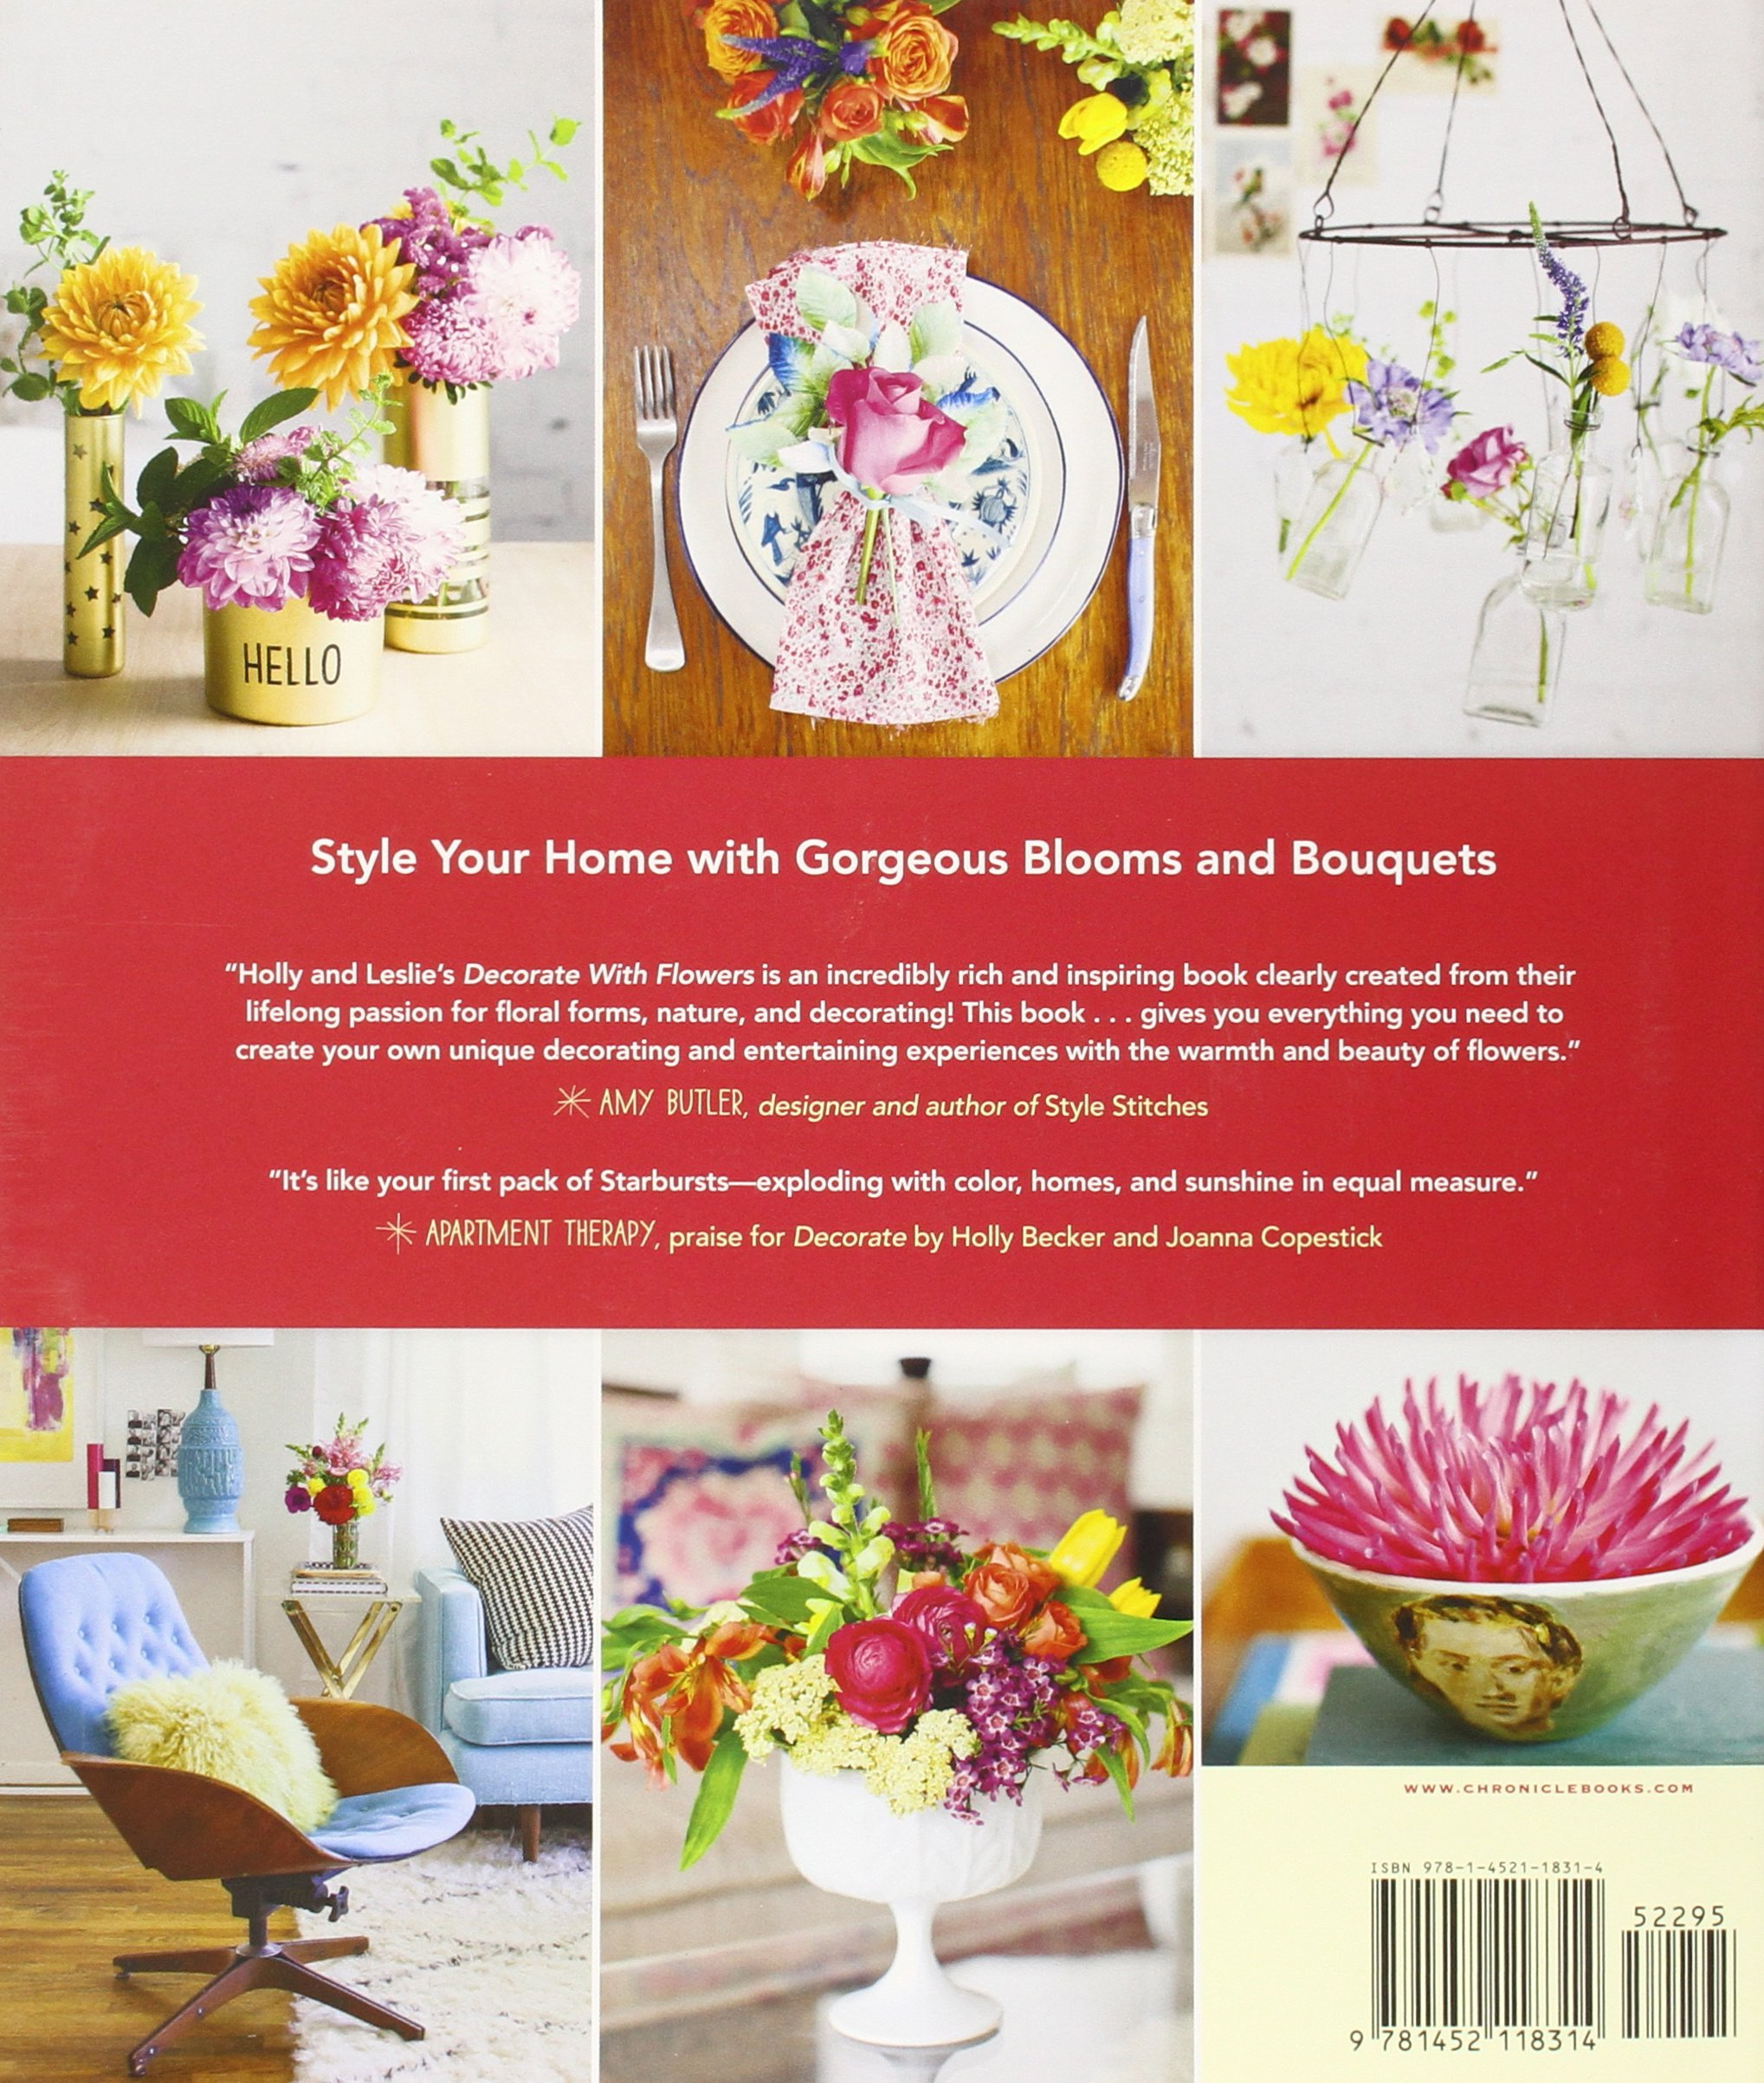 How to decorate home with flowers - Decorate With Flowers Creative Arrangements Styling Inspiration Container Projects Design Tips Holly Becker Leslie Shewring 9781452118314